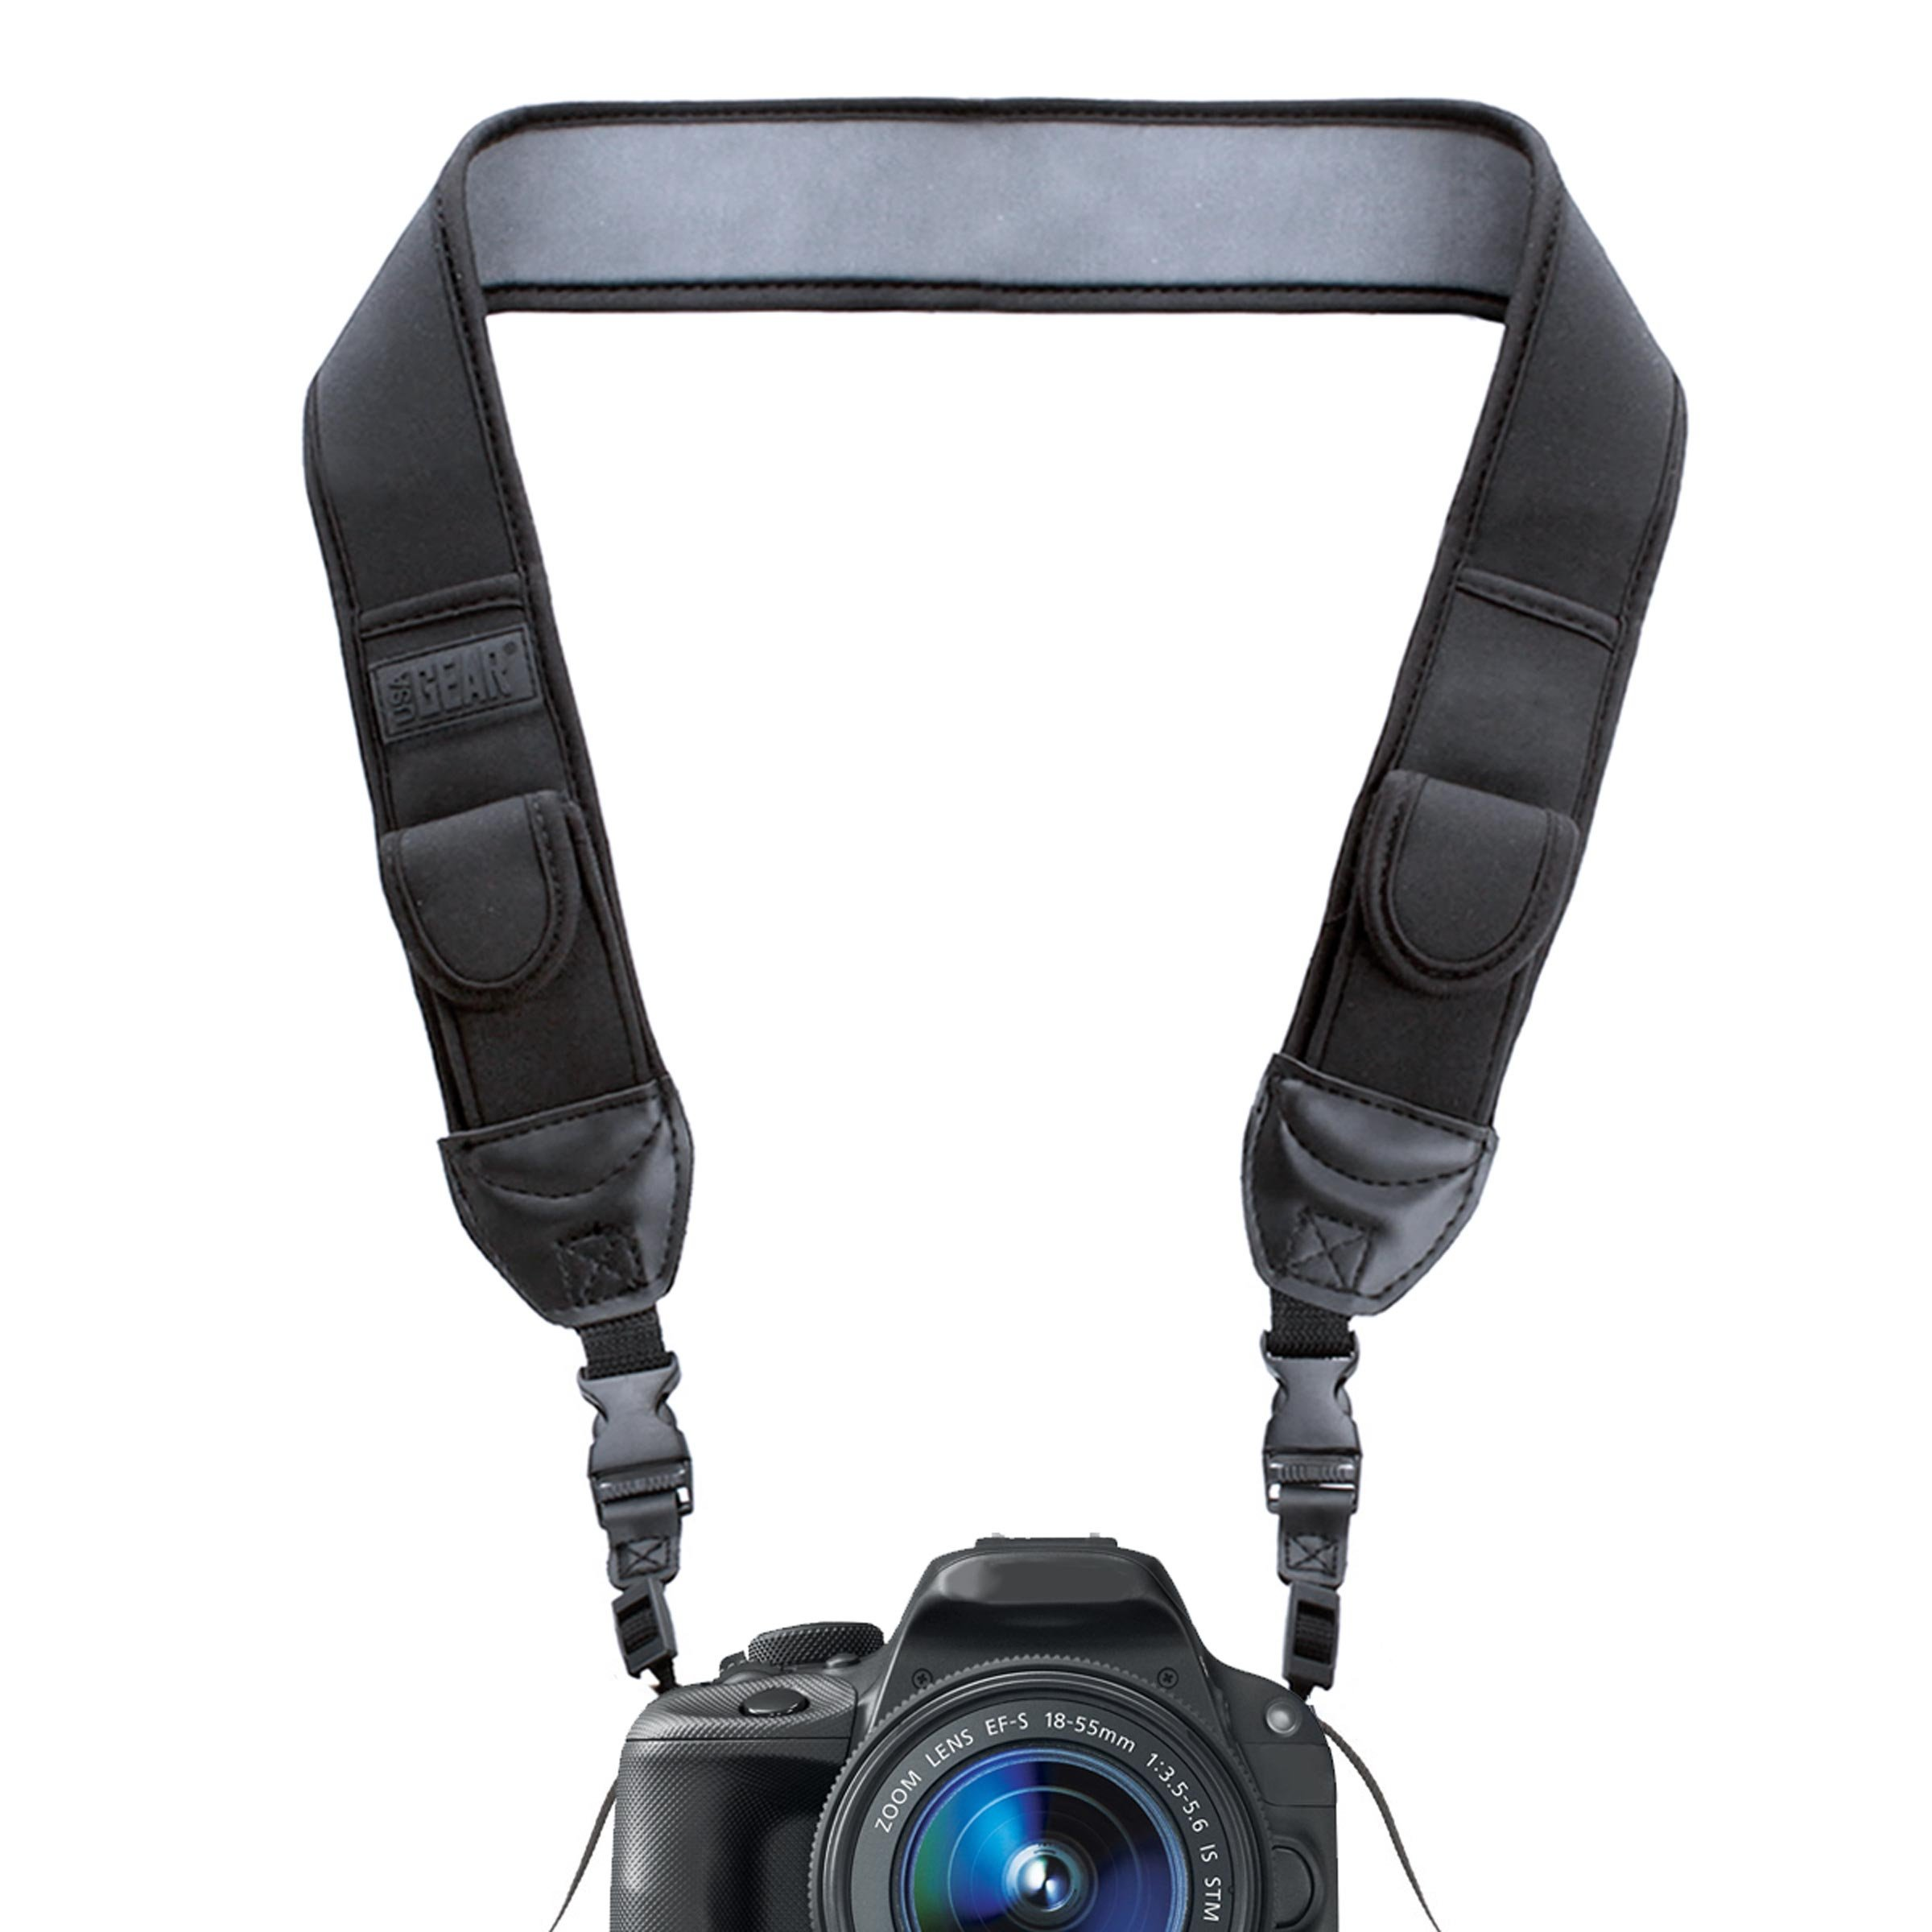 Neoprene Camera Strap Neck with Quick Release Buckles and Accessory Storage Pockets by USA Gear - Works With Canon, Fujifilm, Nikon, Sony and More DSLR, Mirrorless, Instant Cameras